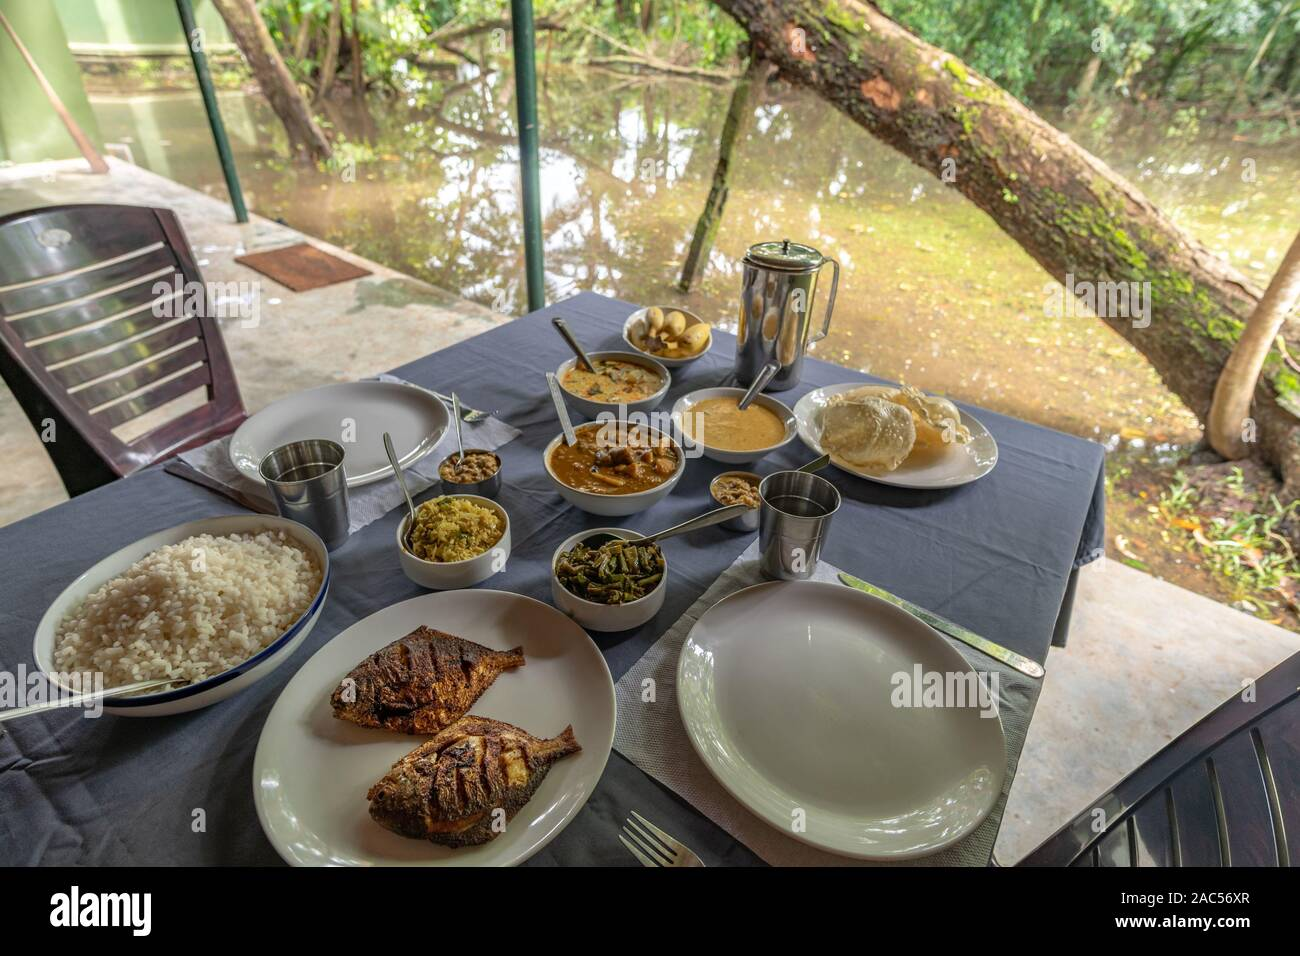 South Indian Food Being Served on Table in Alleppey Kerala India Stock Photo